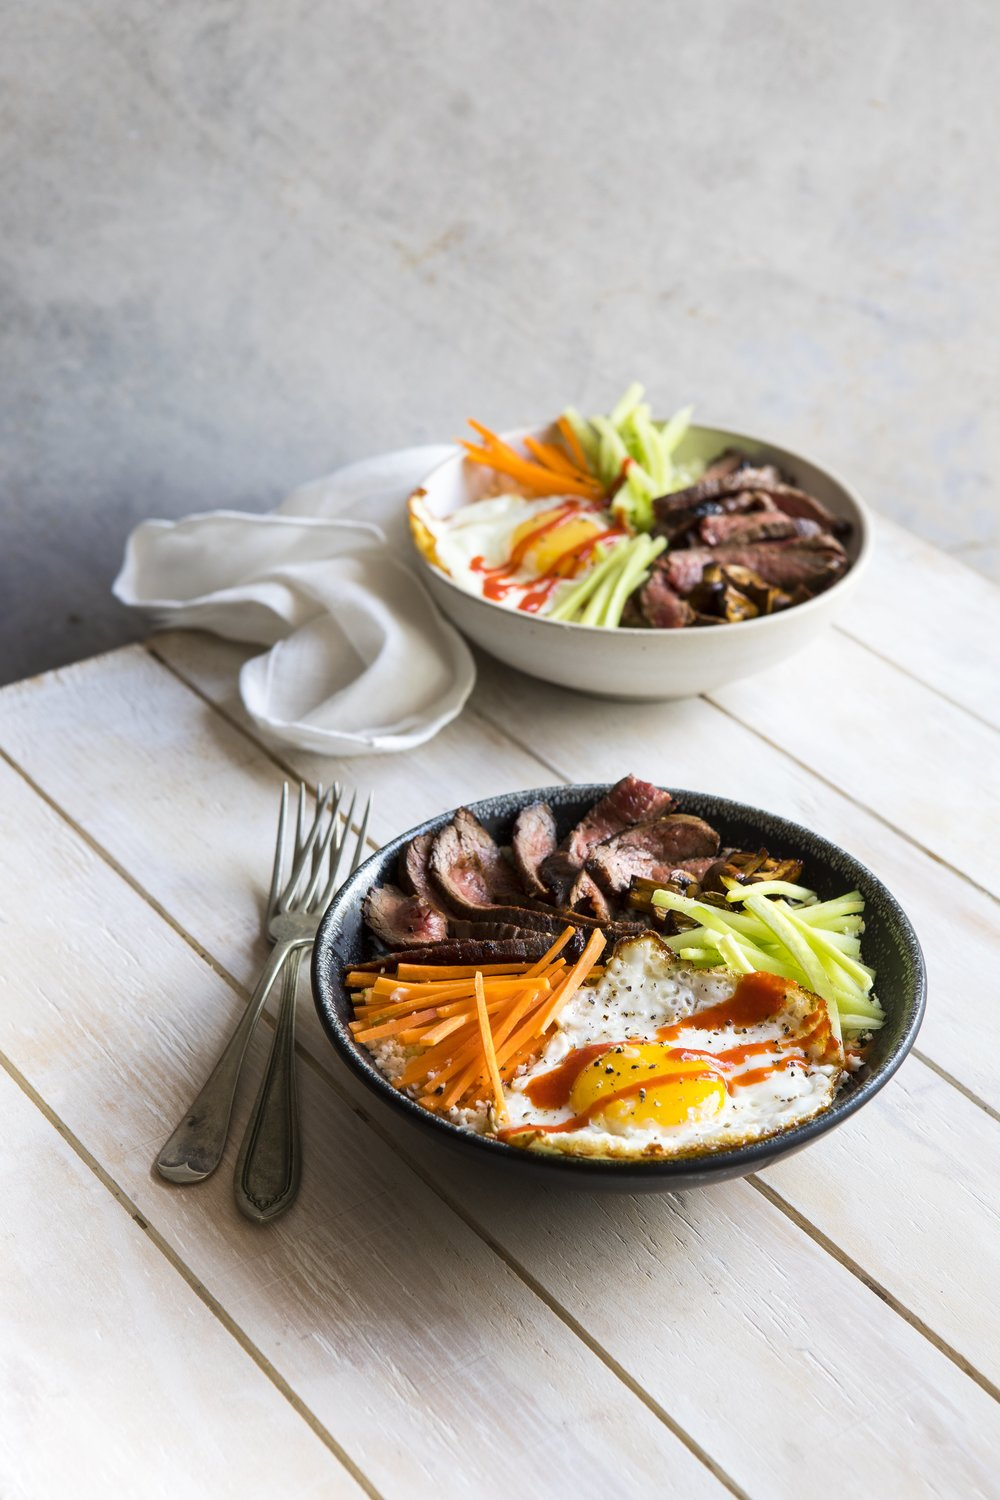 THE EASY 5-INGREDIENT KETOGENIC DIET COOKBOOK RECIPE: STEAK AND EGG BIBIMBAP